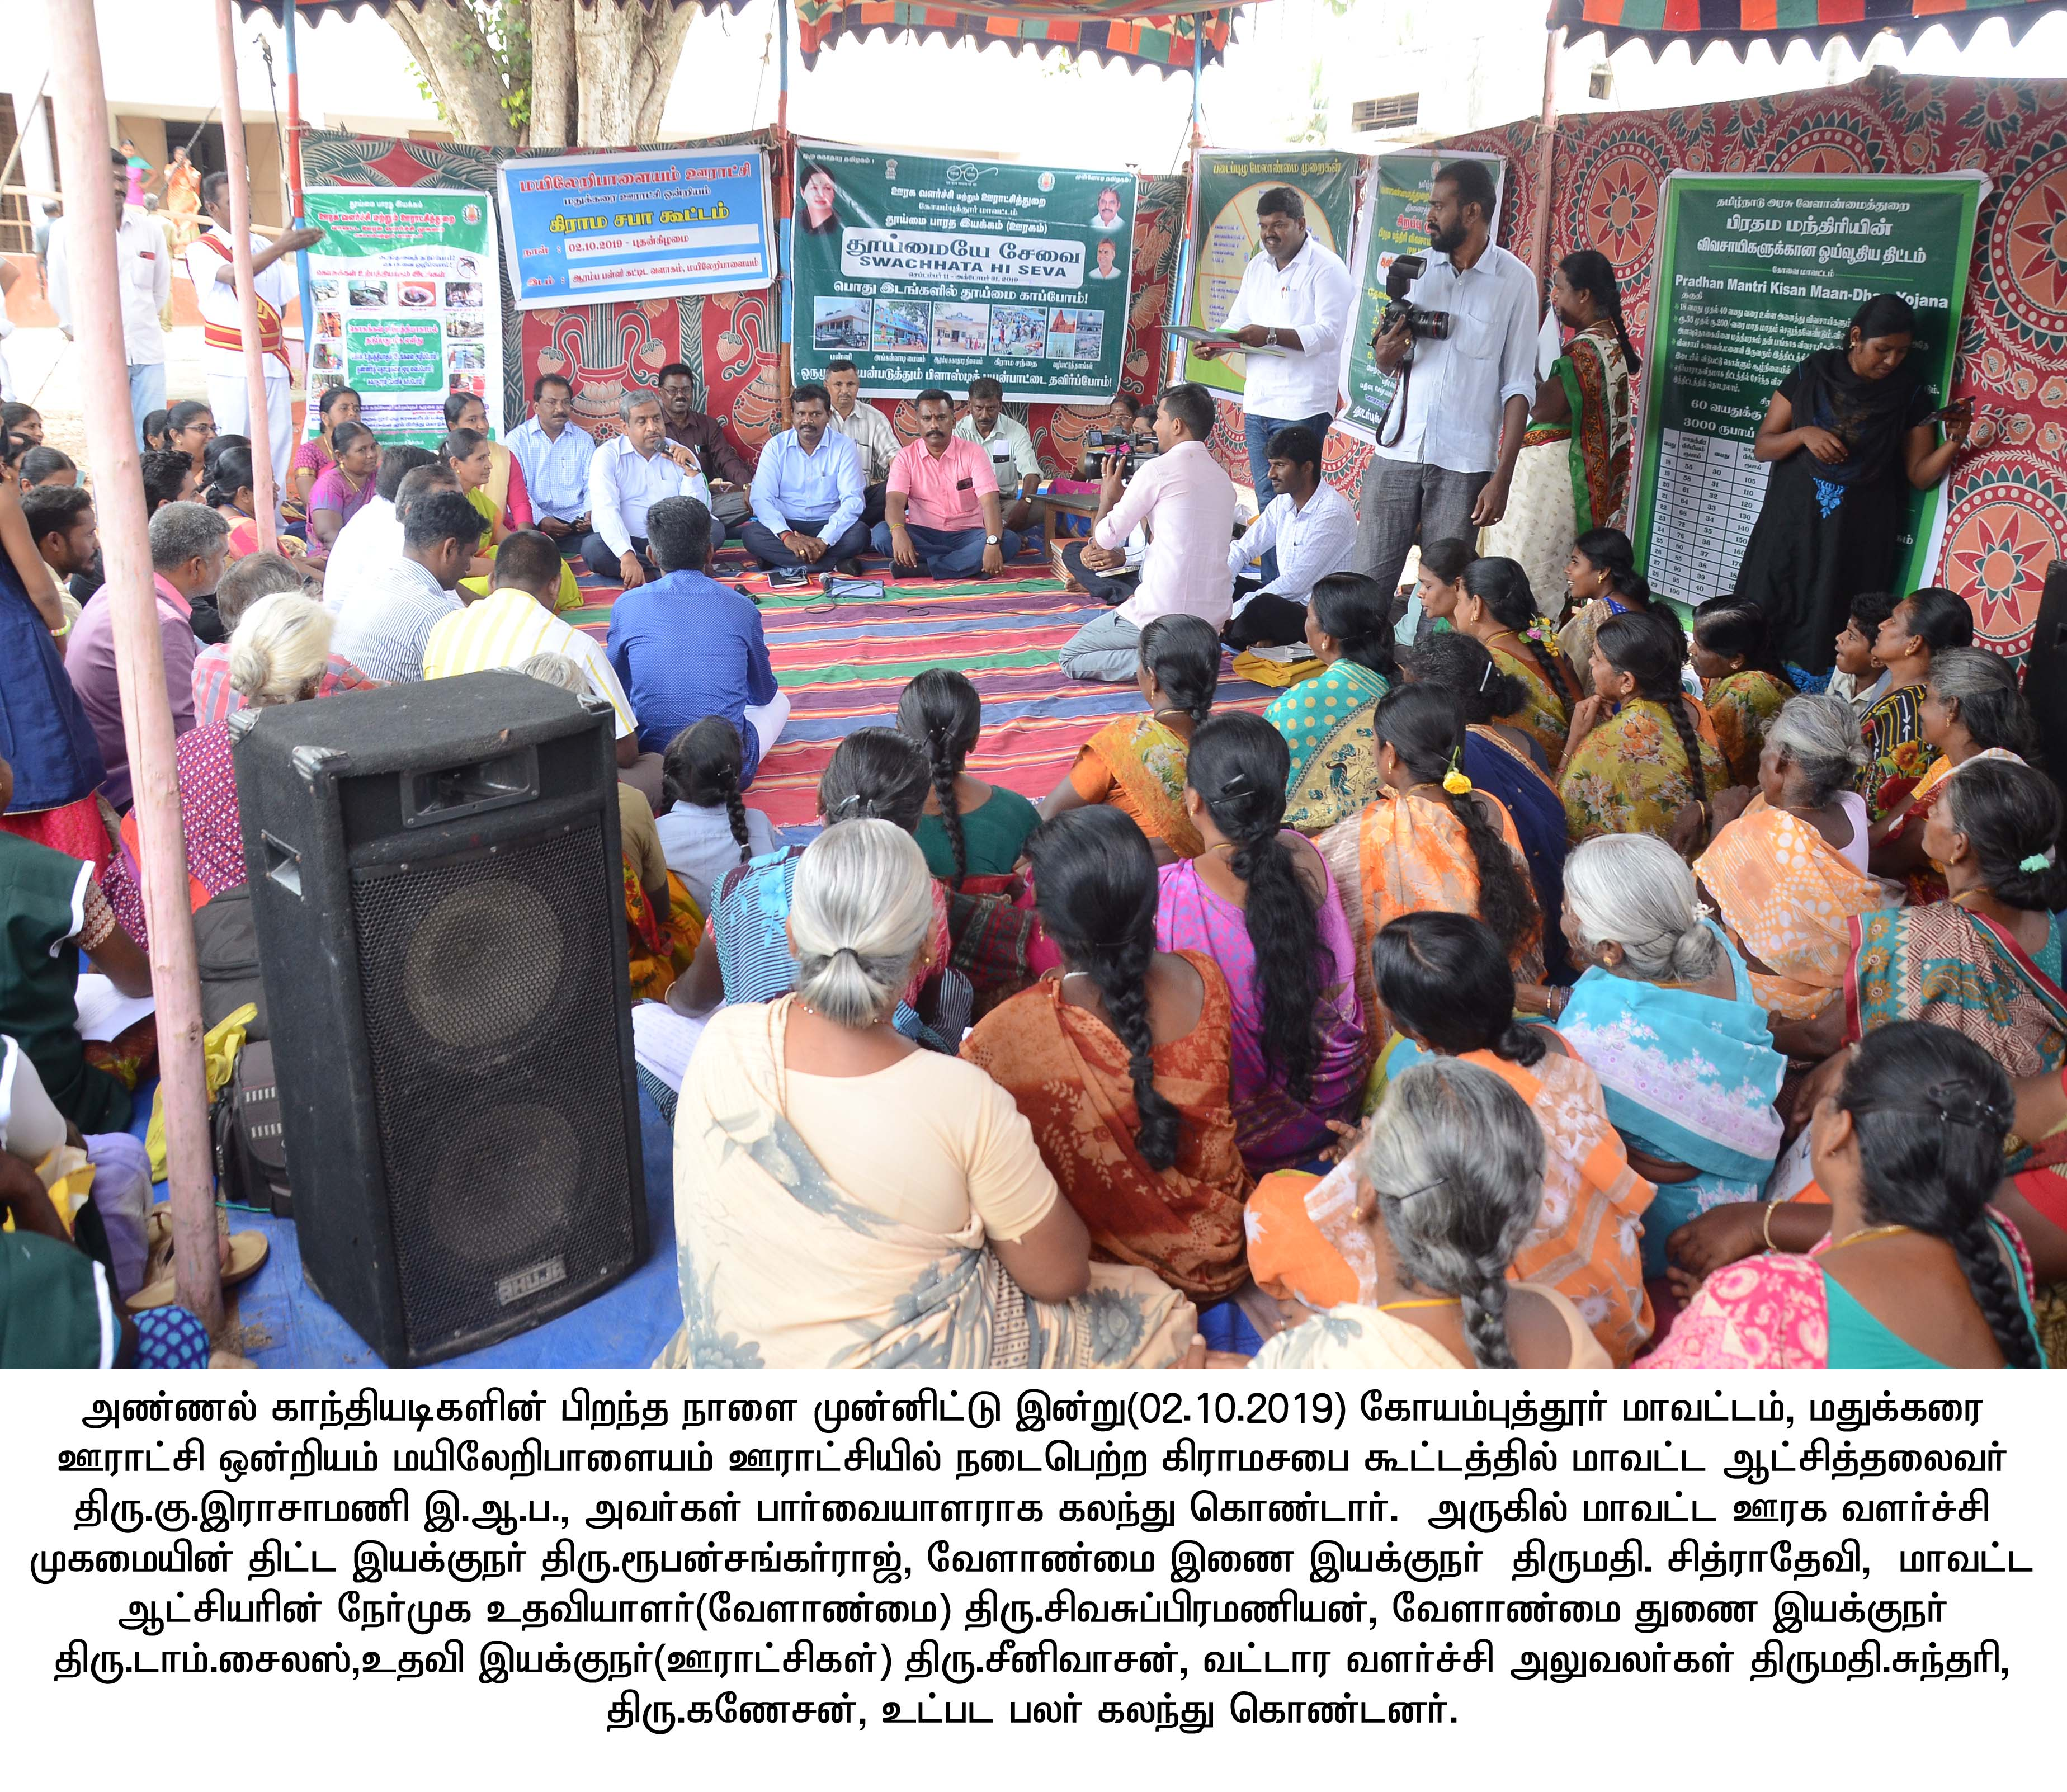 Grama Sabha Meeting held at Myleripalayam village.